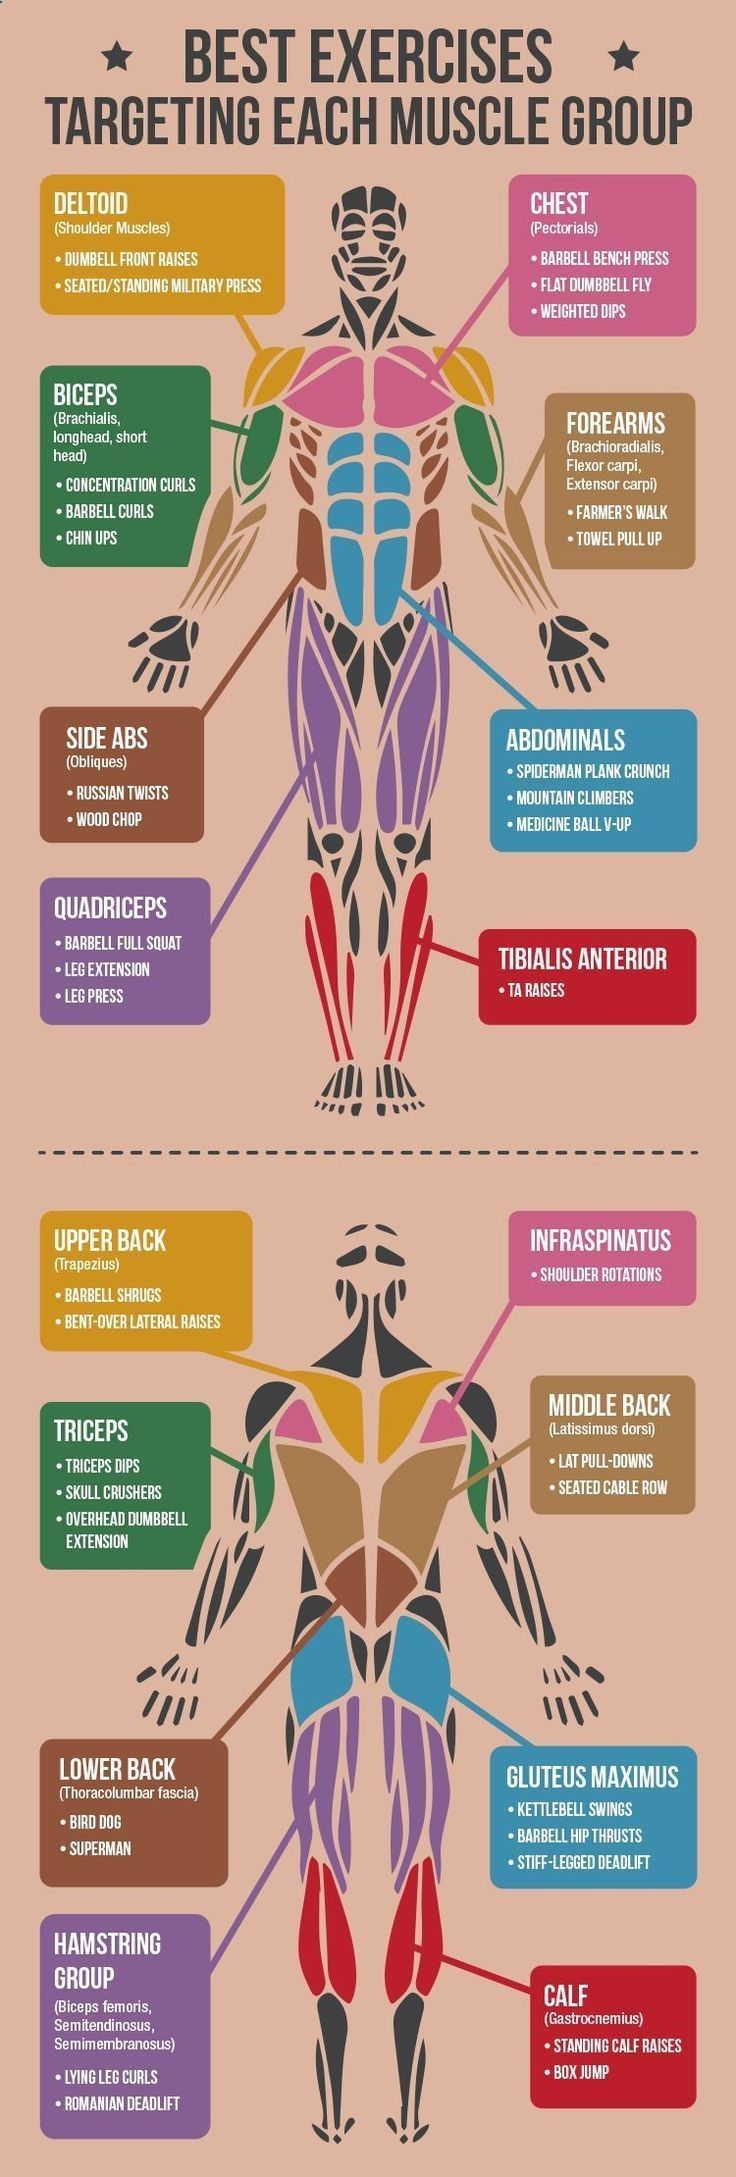 881 Best Belly Fat Workout Images On Pinterest